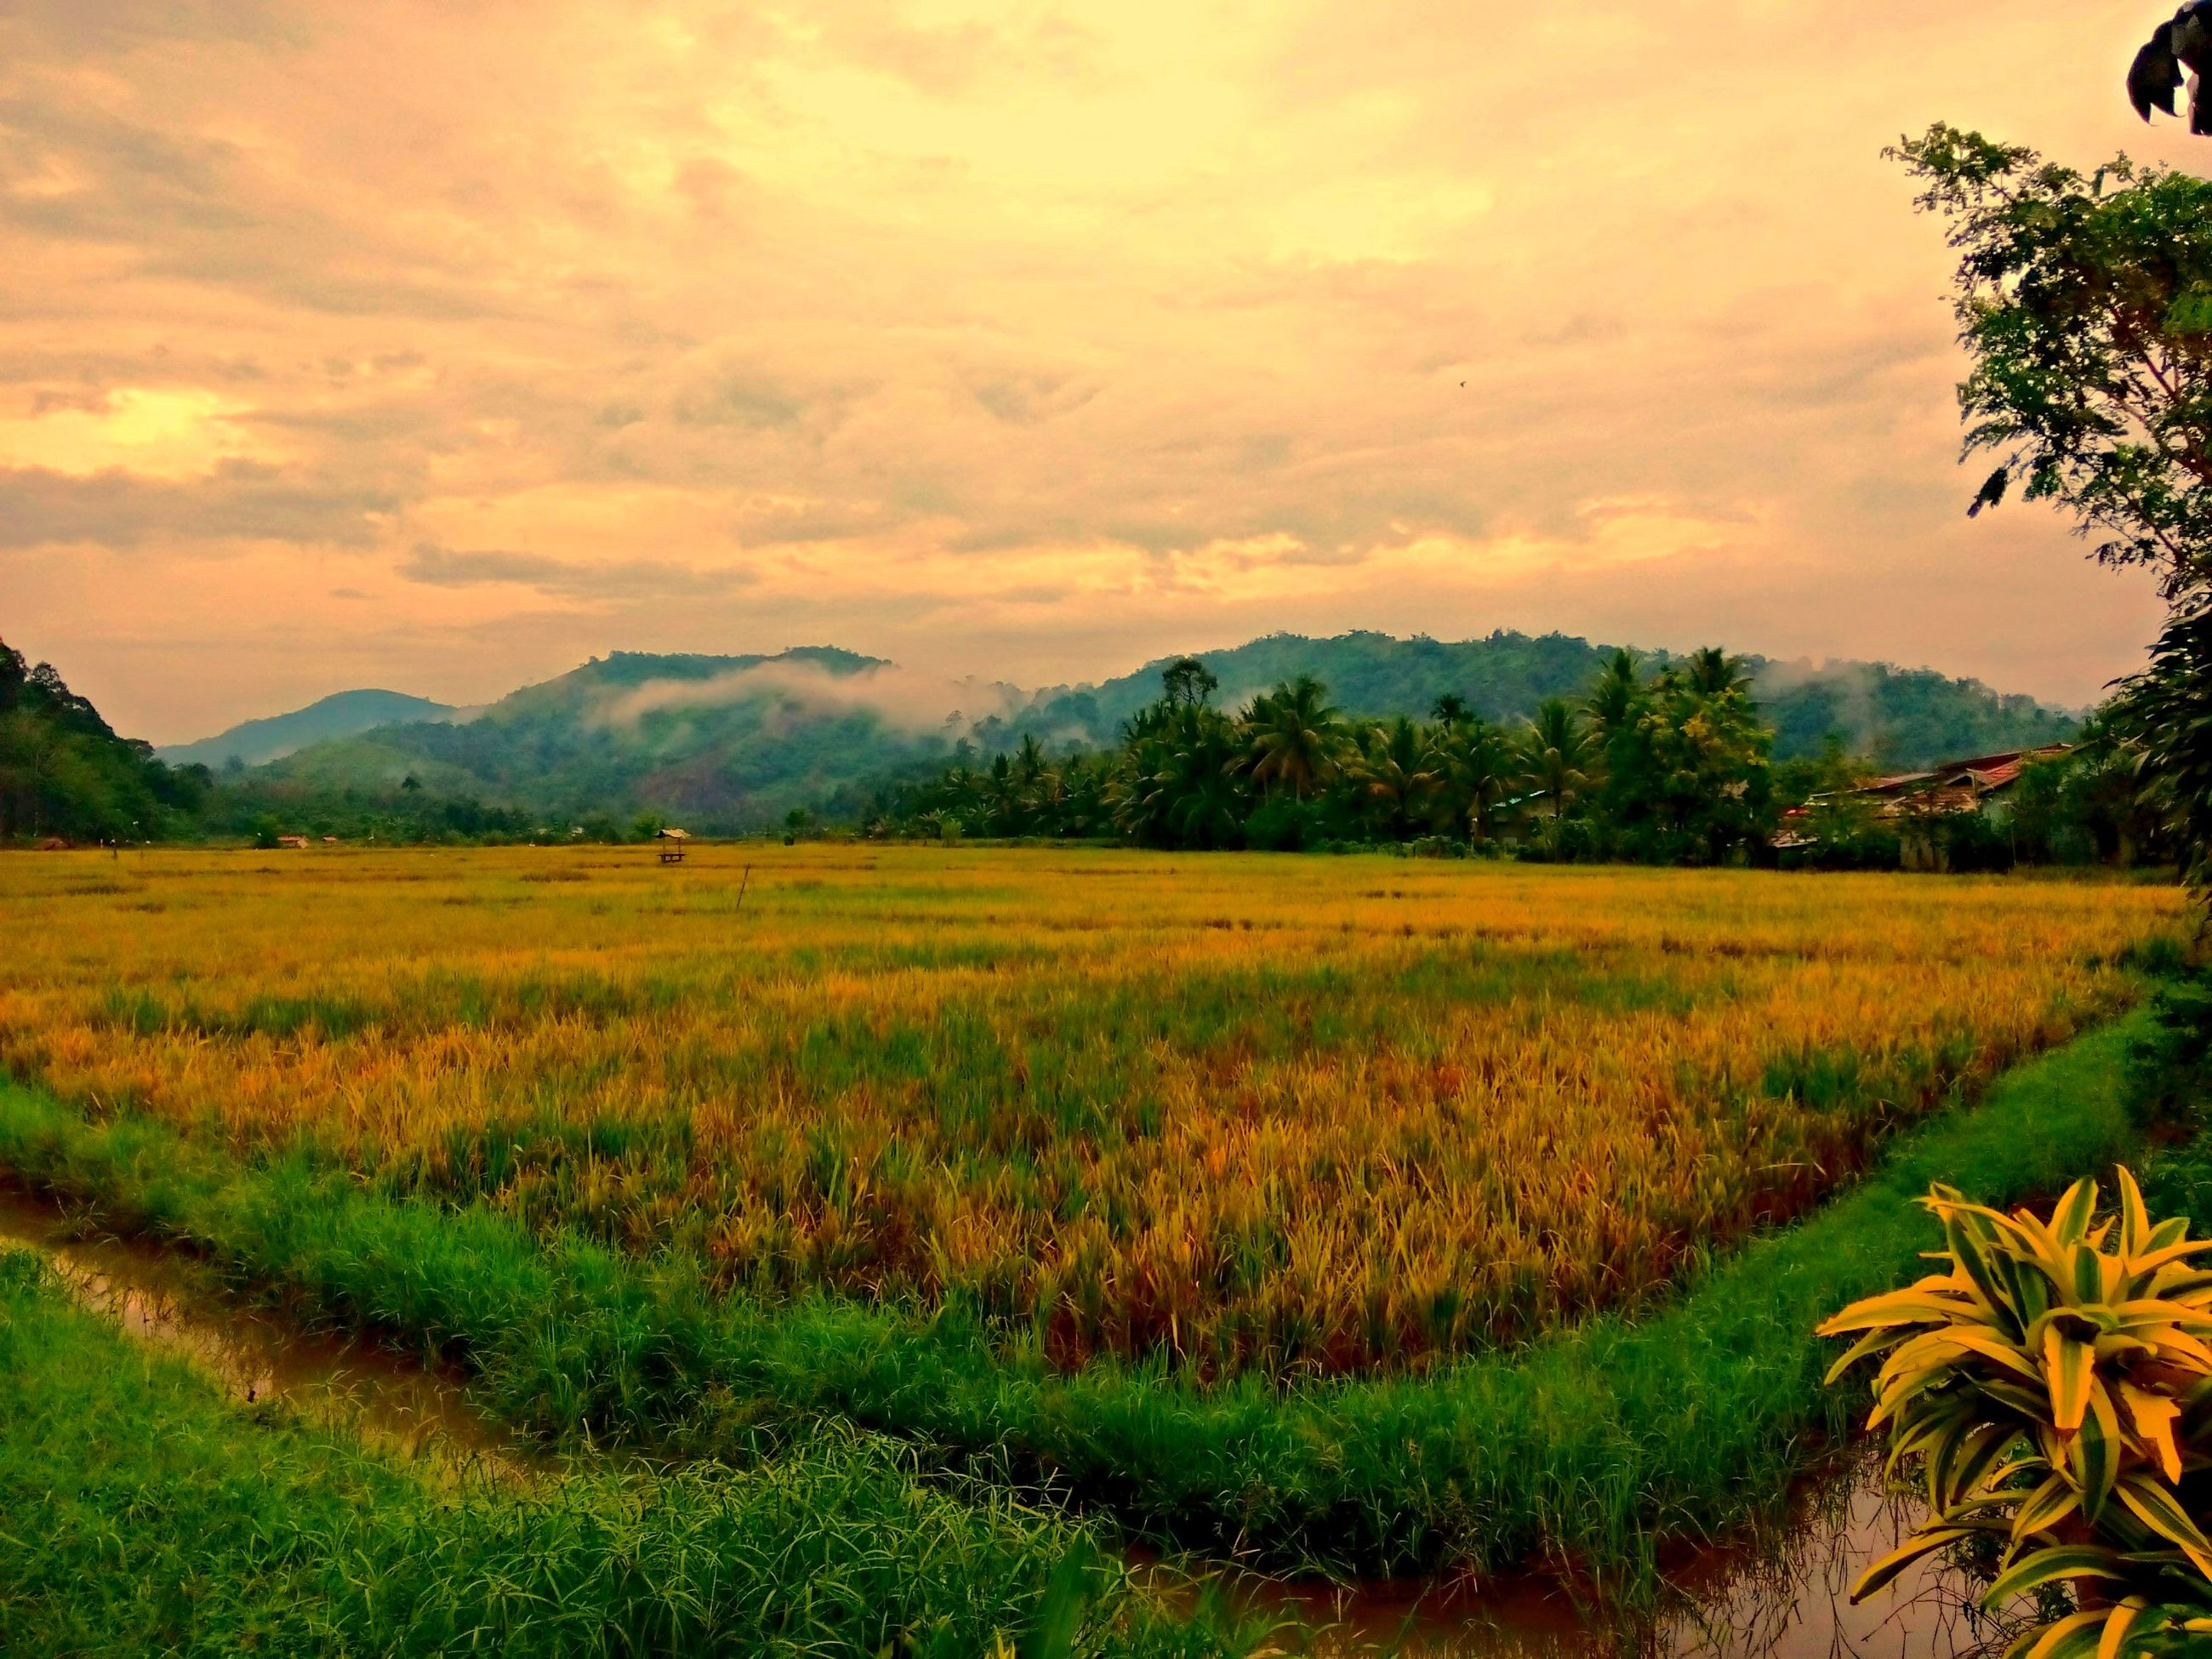 landscape, tranquil scene, sky, field, beauty in nature, tranquility, scenics, sunset, nature, rural scene, growth, cloud - sky, grass, agriculture, mountain, green color, tree, idyllic, farm, cloud